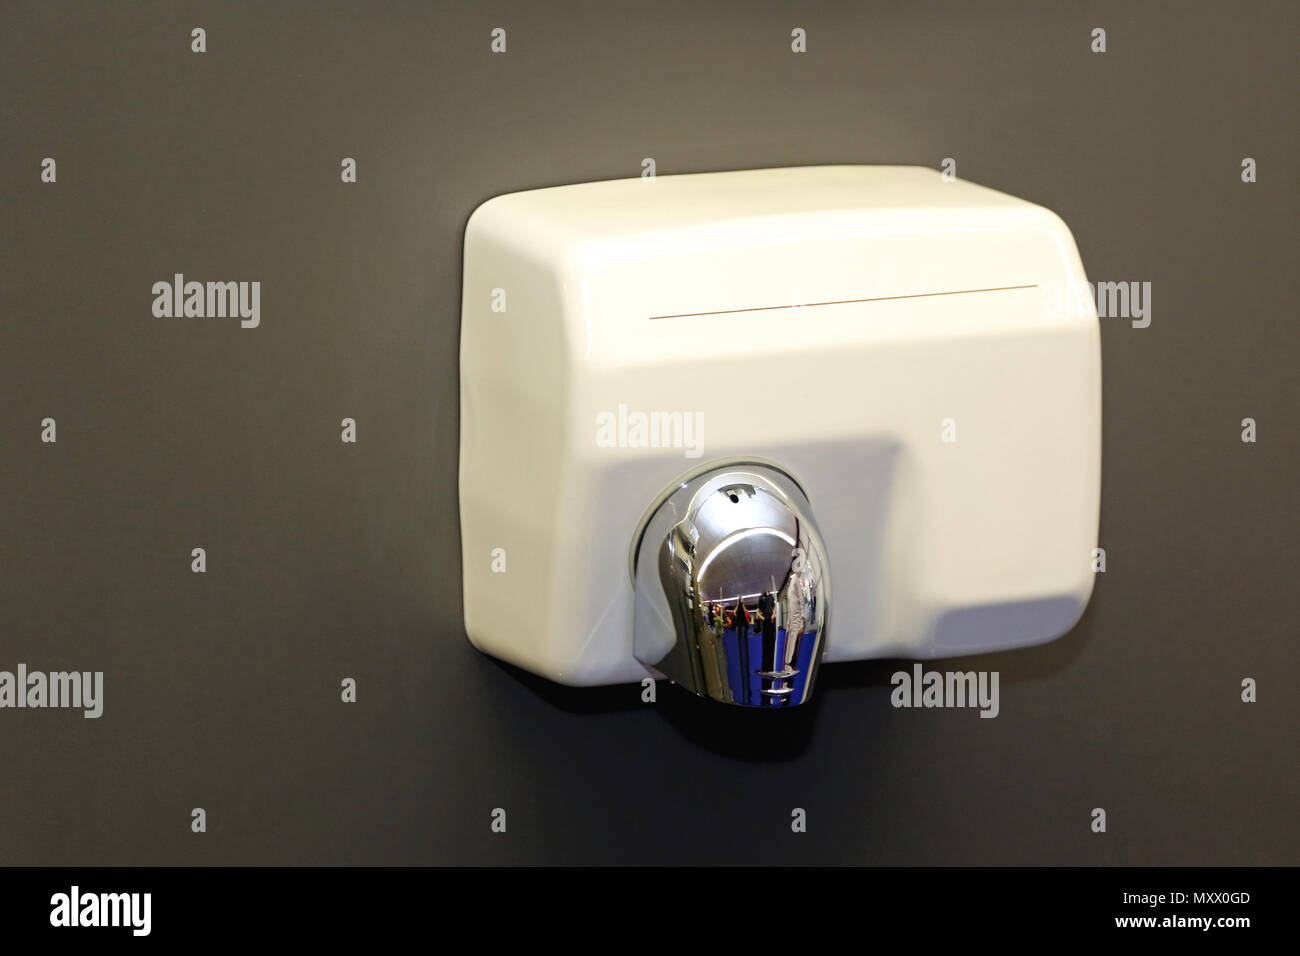 Händetrockner Mit Tuch Electric Hand Dryer Stockfotos Electric Hand Dryer Bilder Alamy